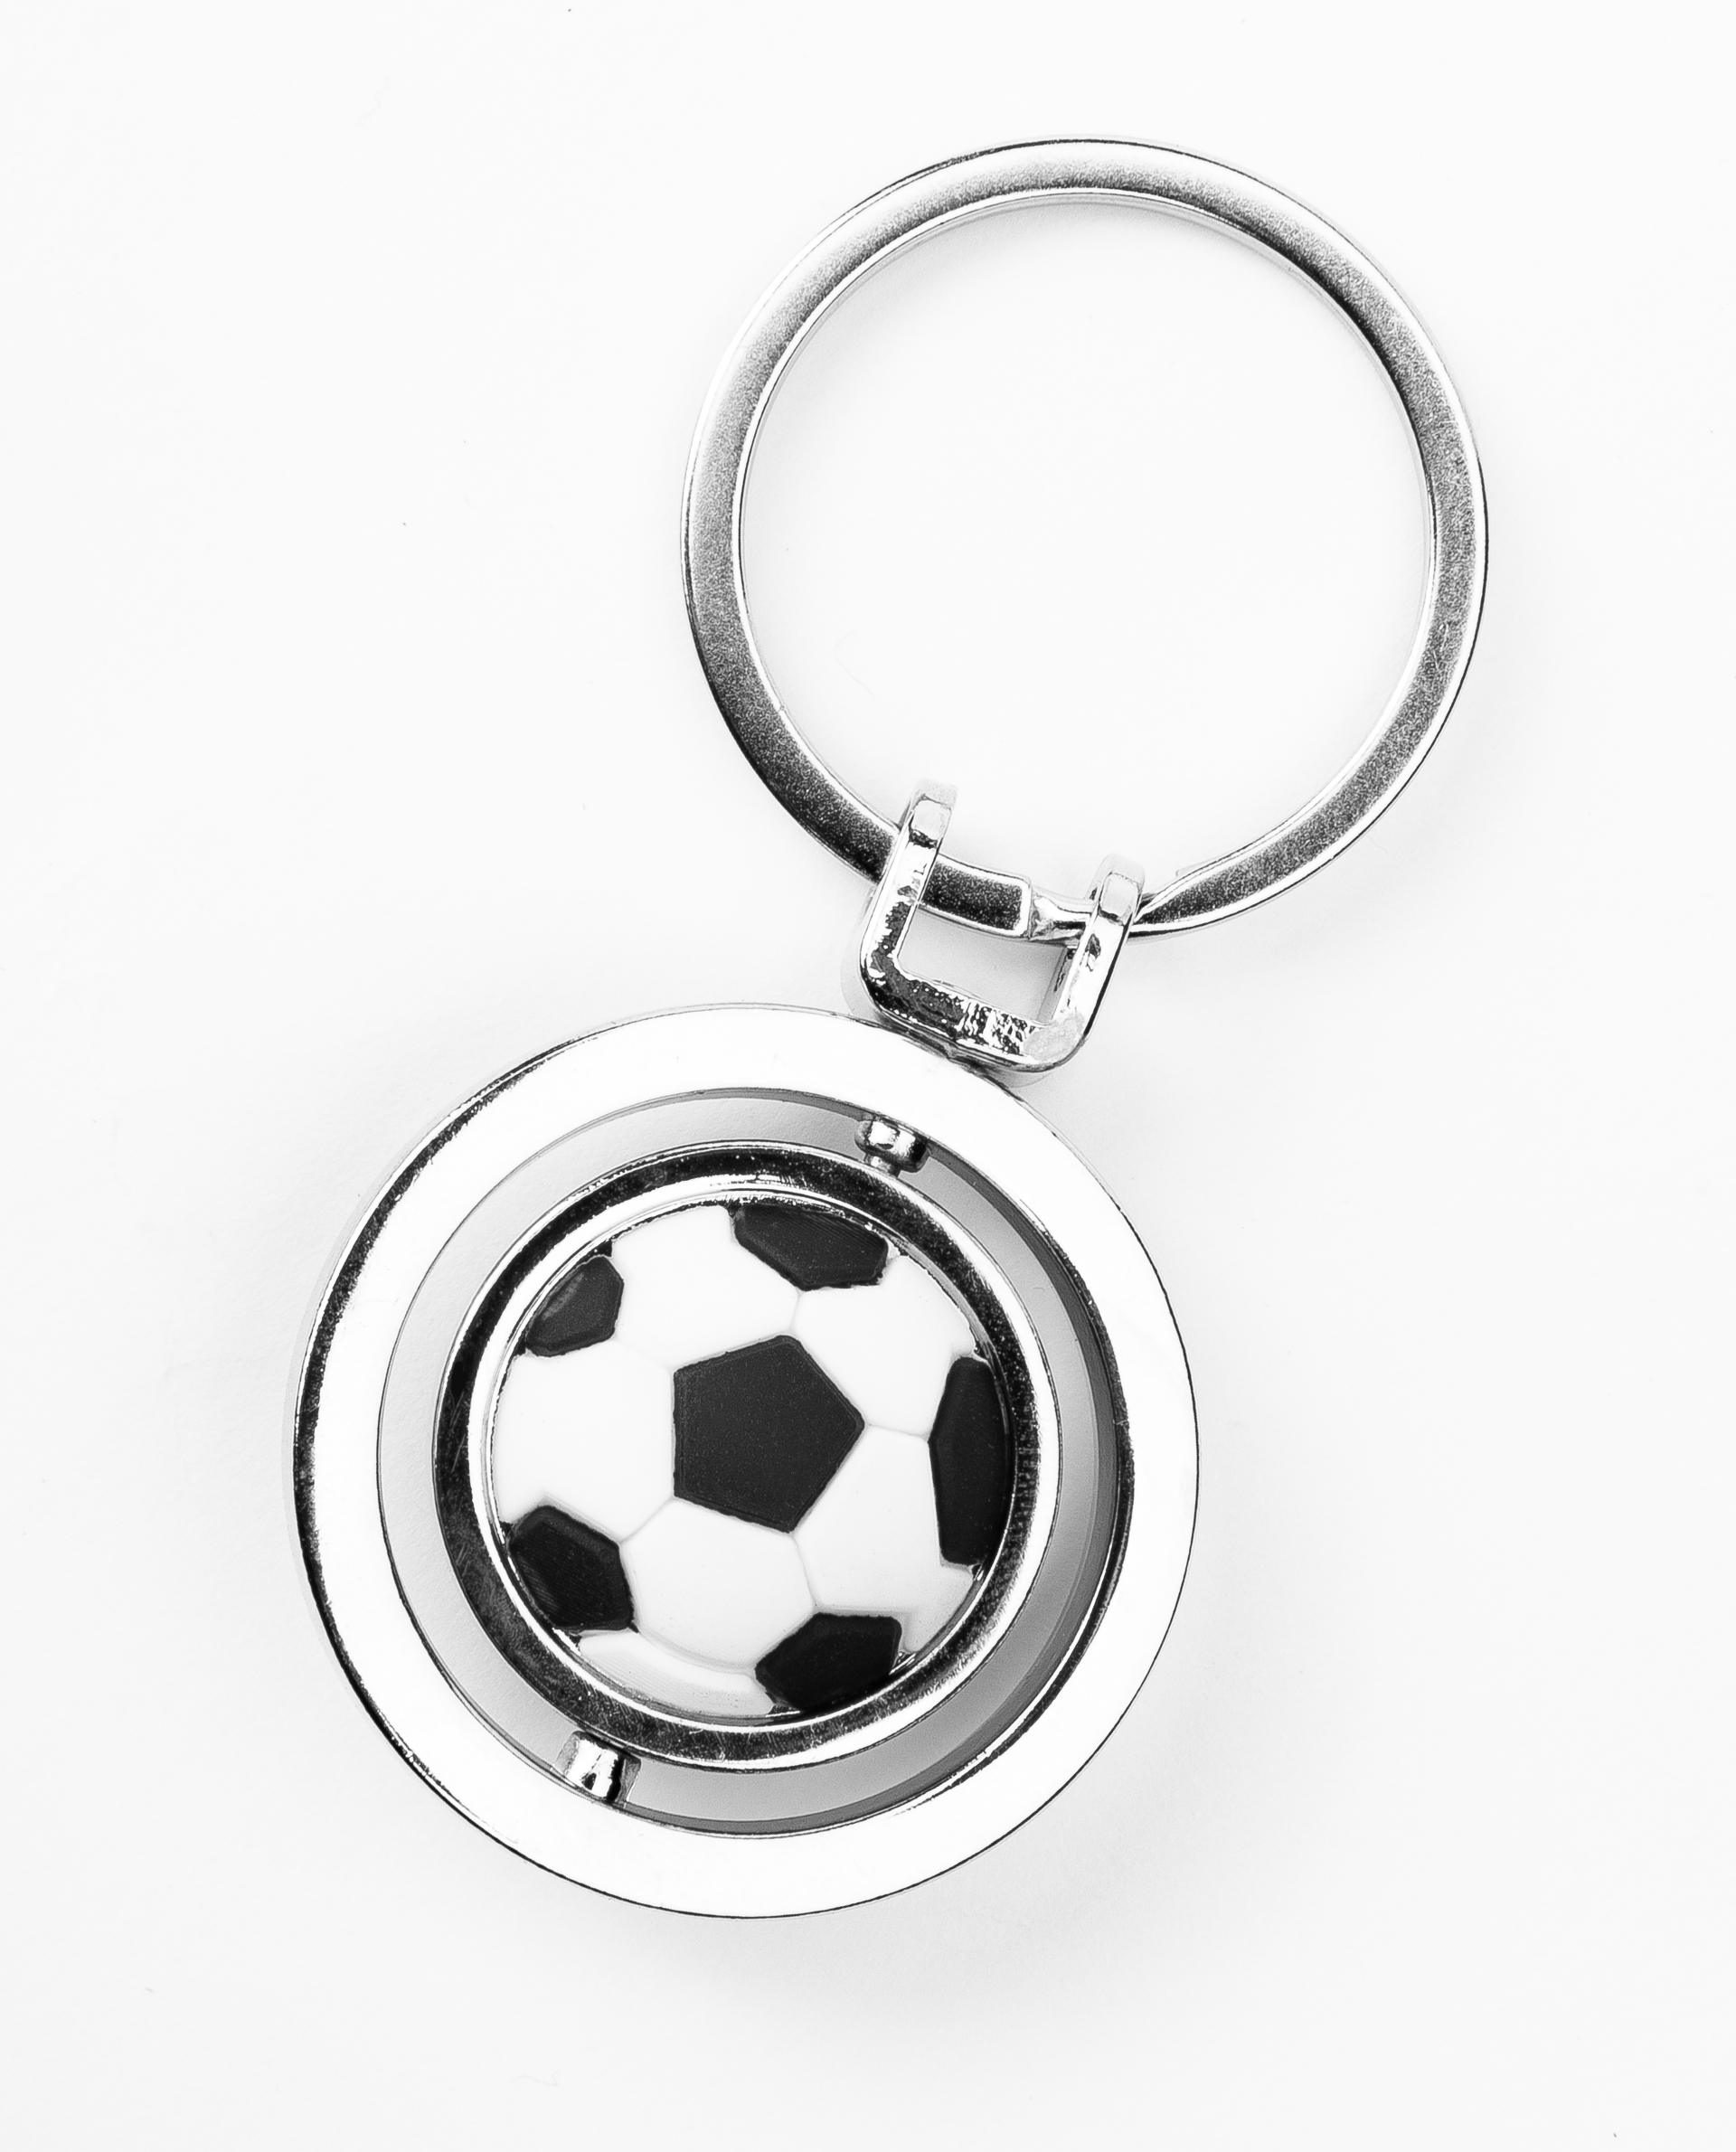 cecc9c3ab Keychain Soccer ball Gulliver is to buy in online store Gulliver ...